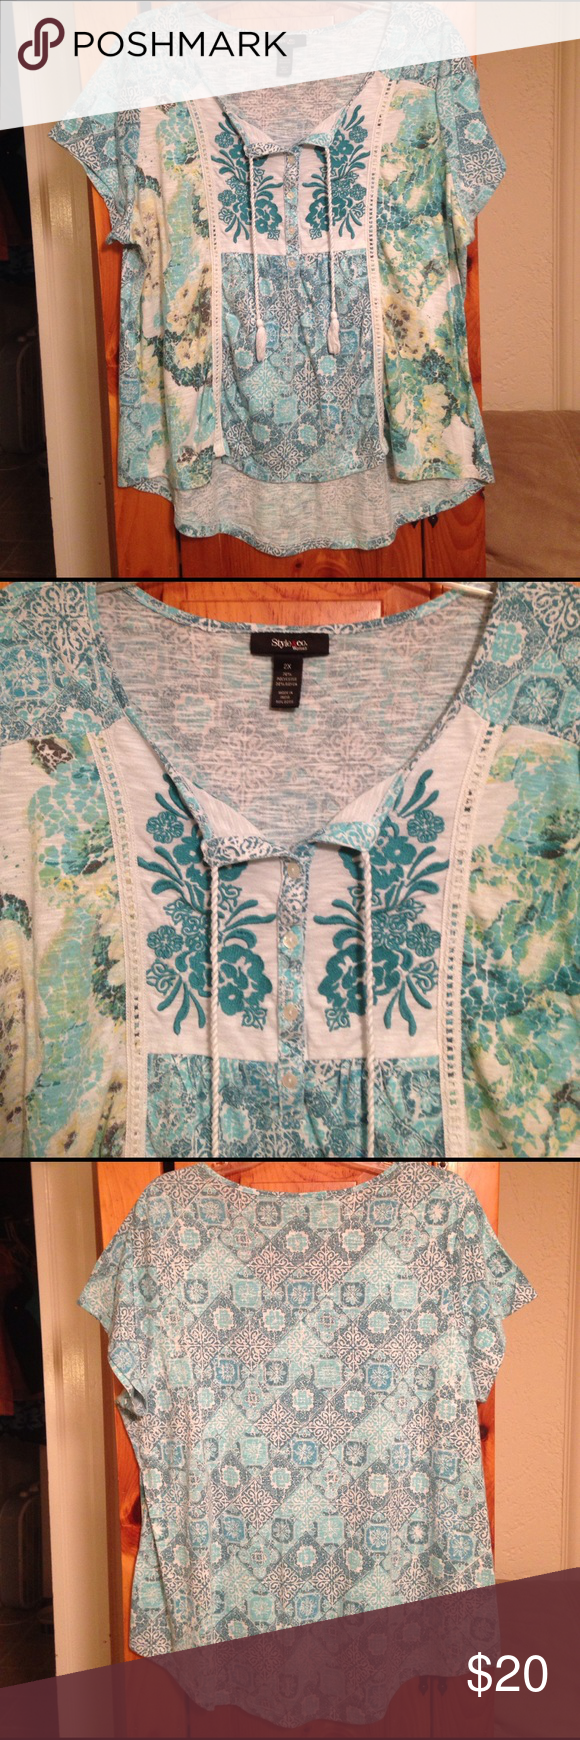 "STYLE & CO EMBROIDERED BLOUSE TOP Women's 2X SUPER CUTE excellent condition turquoise floral print embroidered blouse top by STYLE & COMPANY! Size women's plus 2X. Chest: 24"" across lying flat pit to pit. Length: in front 25"", in back 29"". Material: 70% polyester, 30% rayon. Style & Co Tops Blouses"